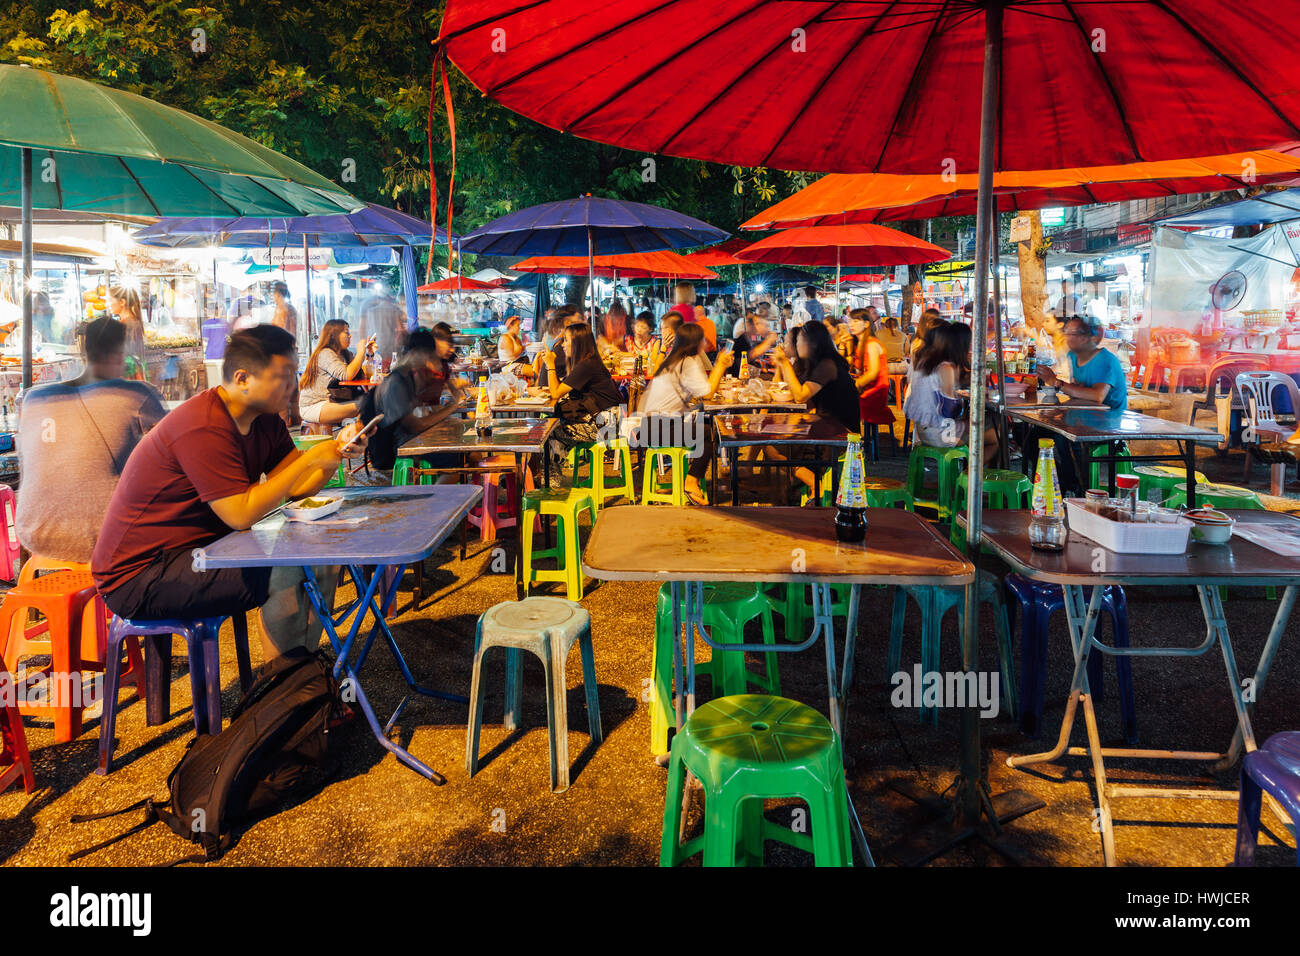 Chiang Mai, Thailand - August 27, 2016:  People eat at the street cafe on Saturday Night Market on August 27, 2016 - Stock Image